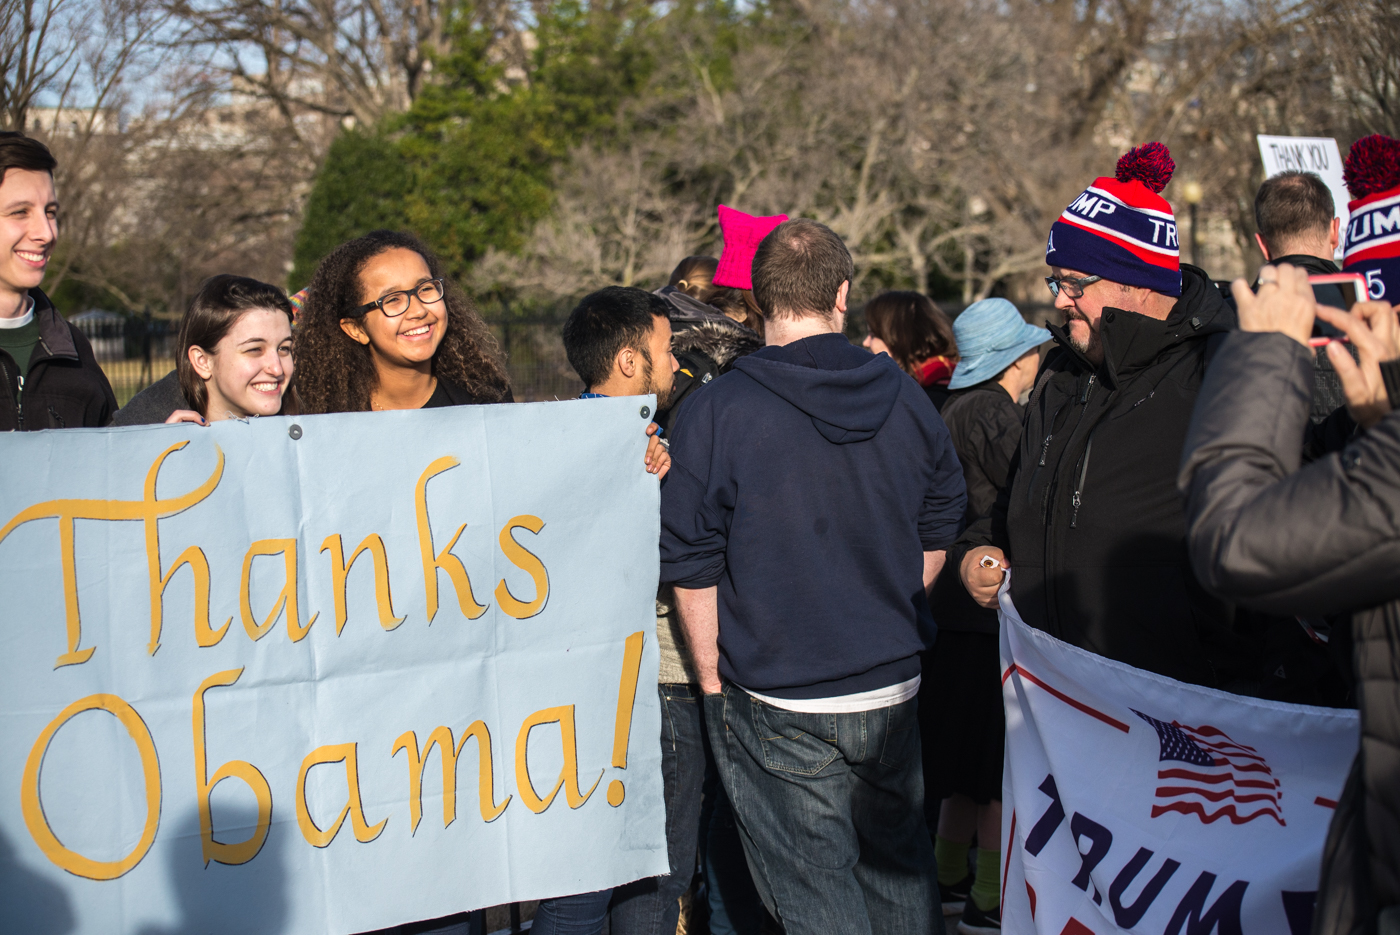 Obama and Trump fans meet in front of the White House.